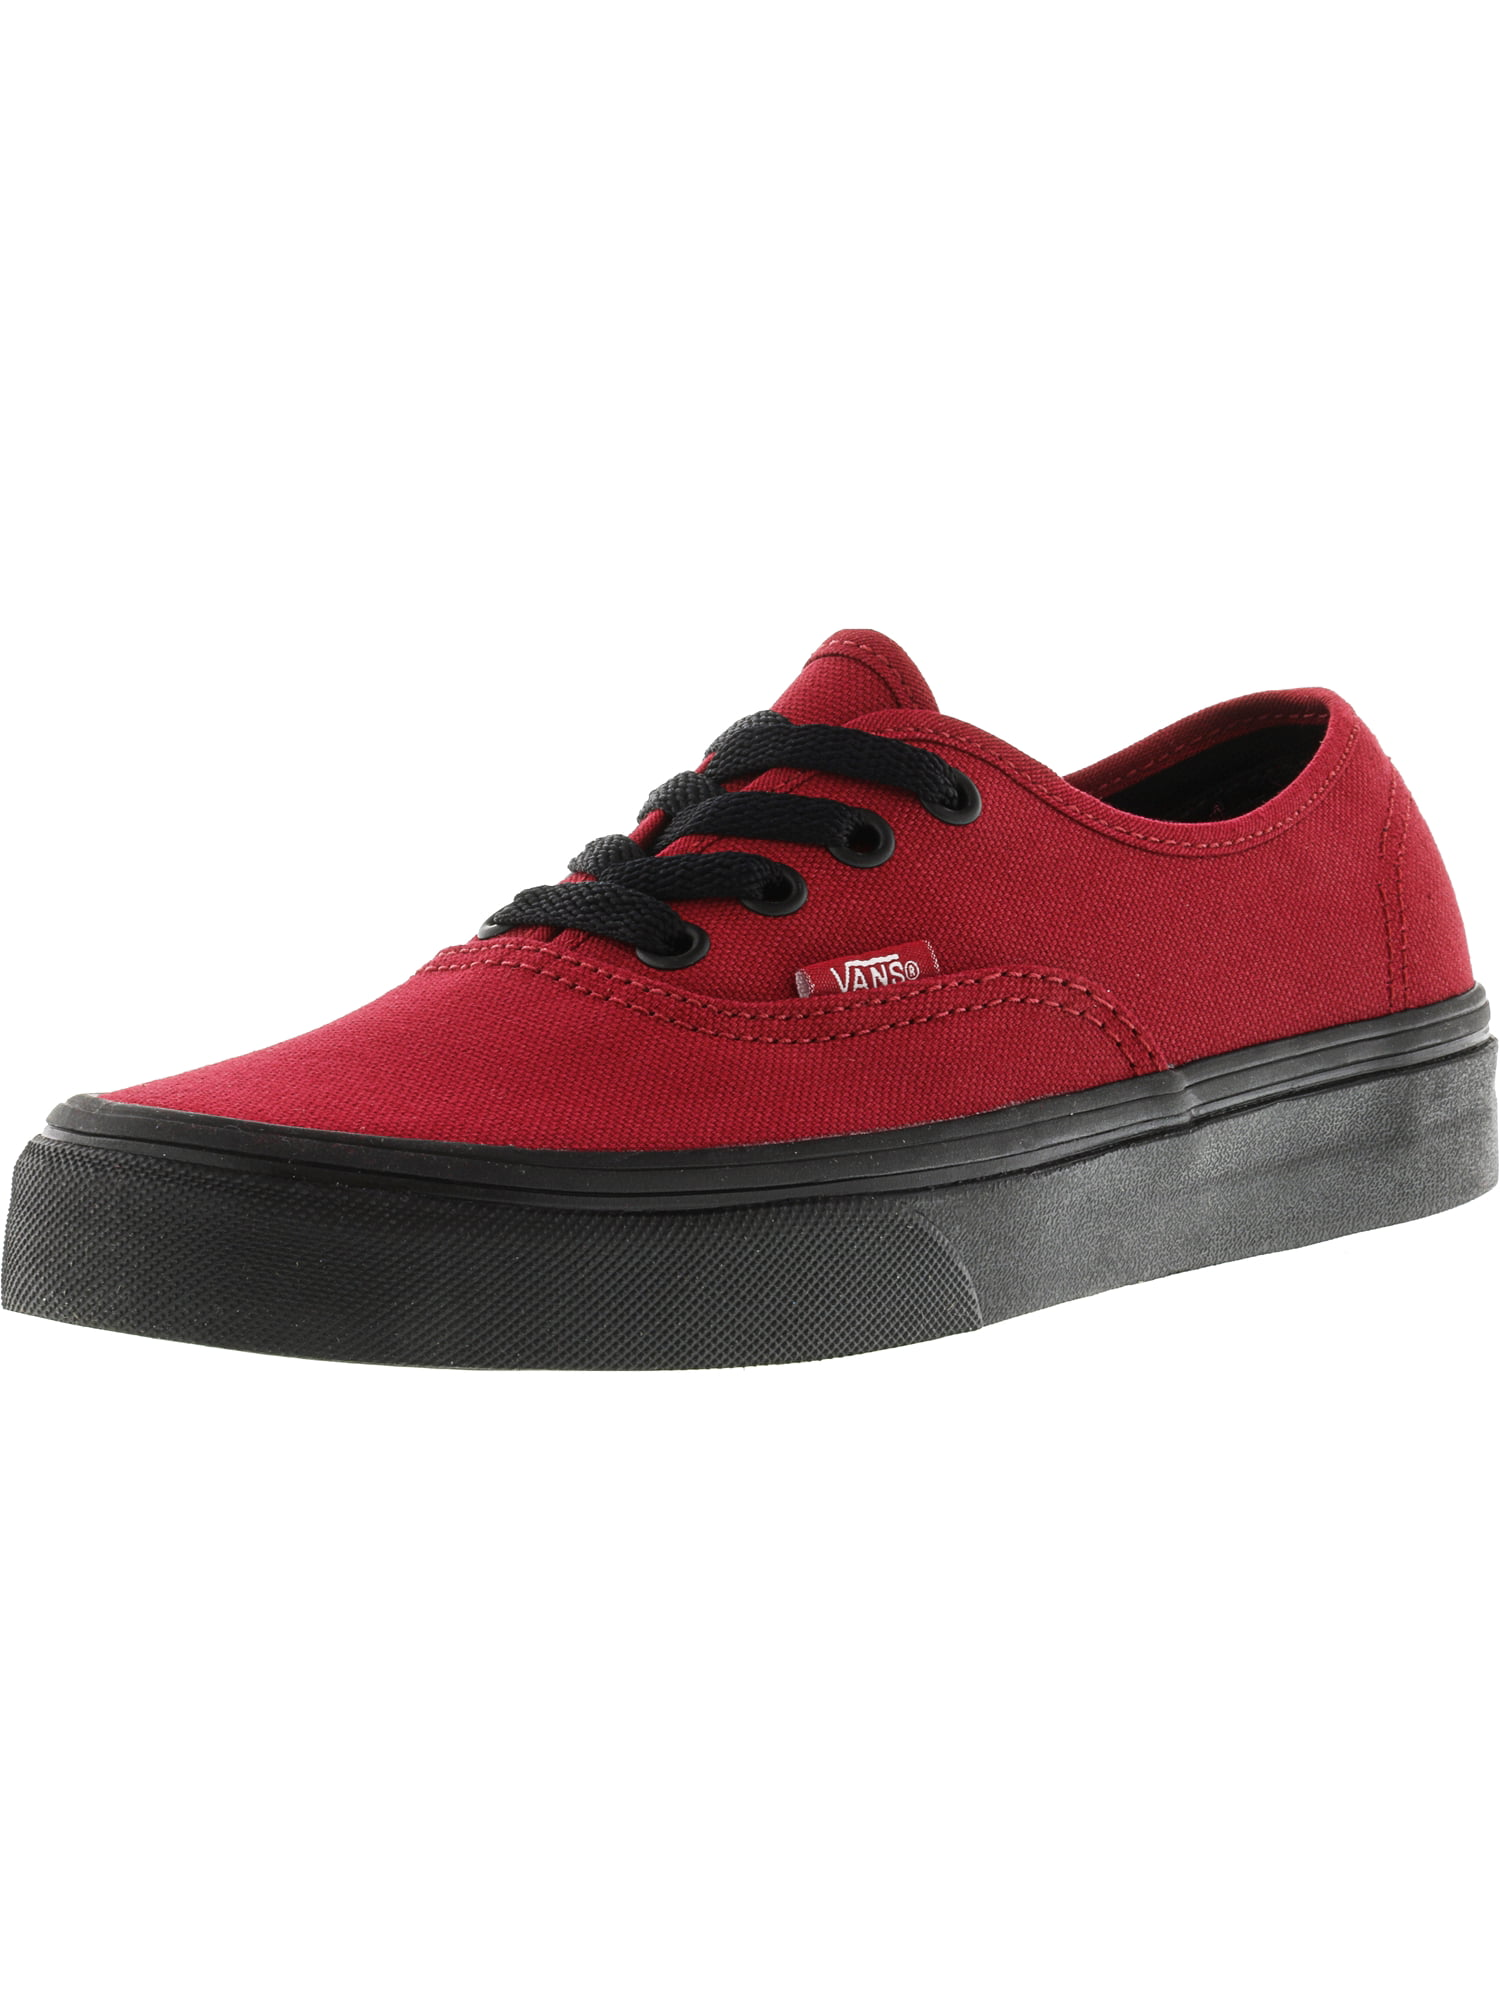 b42109a4f482 Vans - Vans Authentic Black Sole Jester Red Ankle-High Canvas Skateboarding  Shoe - 8M   6.5M - Walmart.com